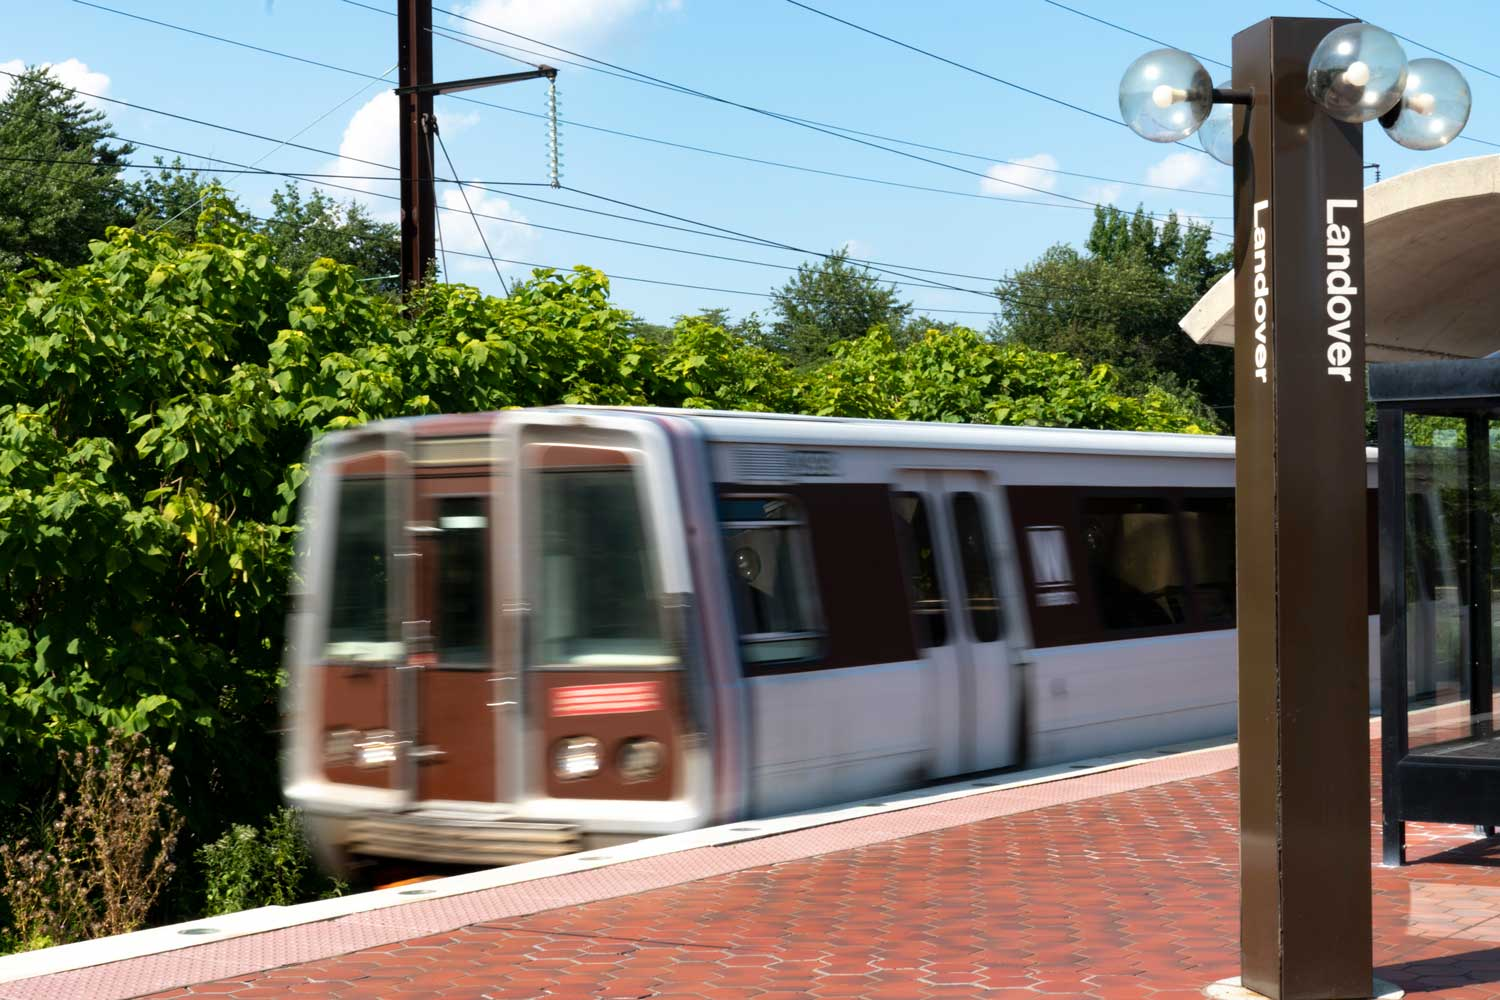 Landover Metro station is 5 minutes from Columbia Park Apartments in Landover, MD